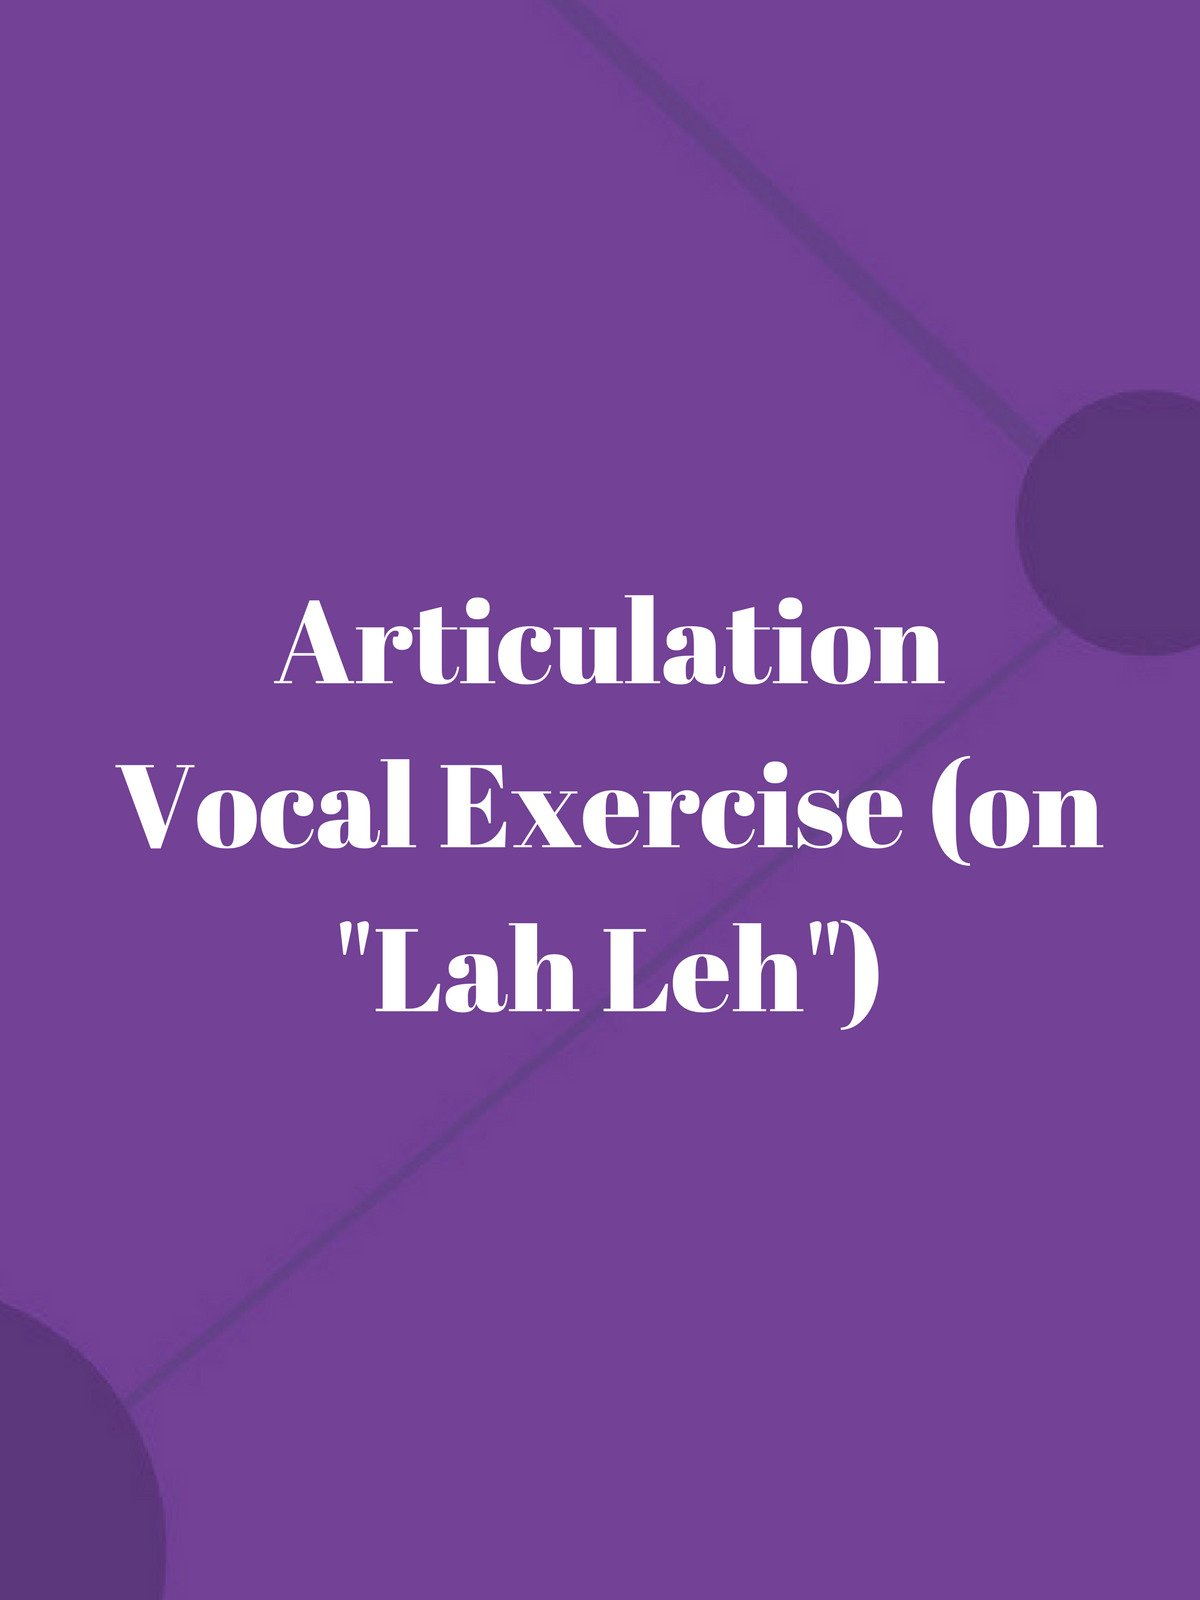 "Articulation Vocal Exercise (on ""Lah Leh"")"